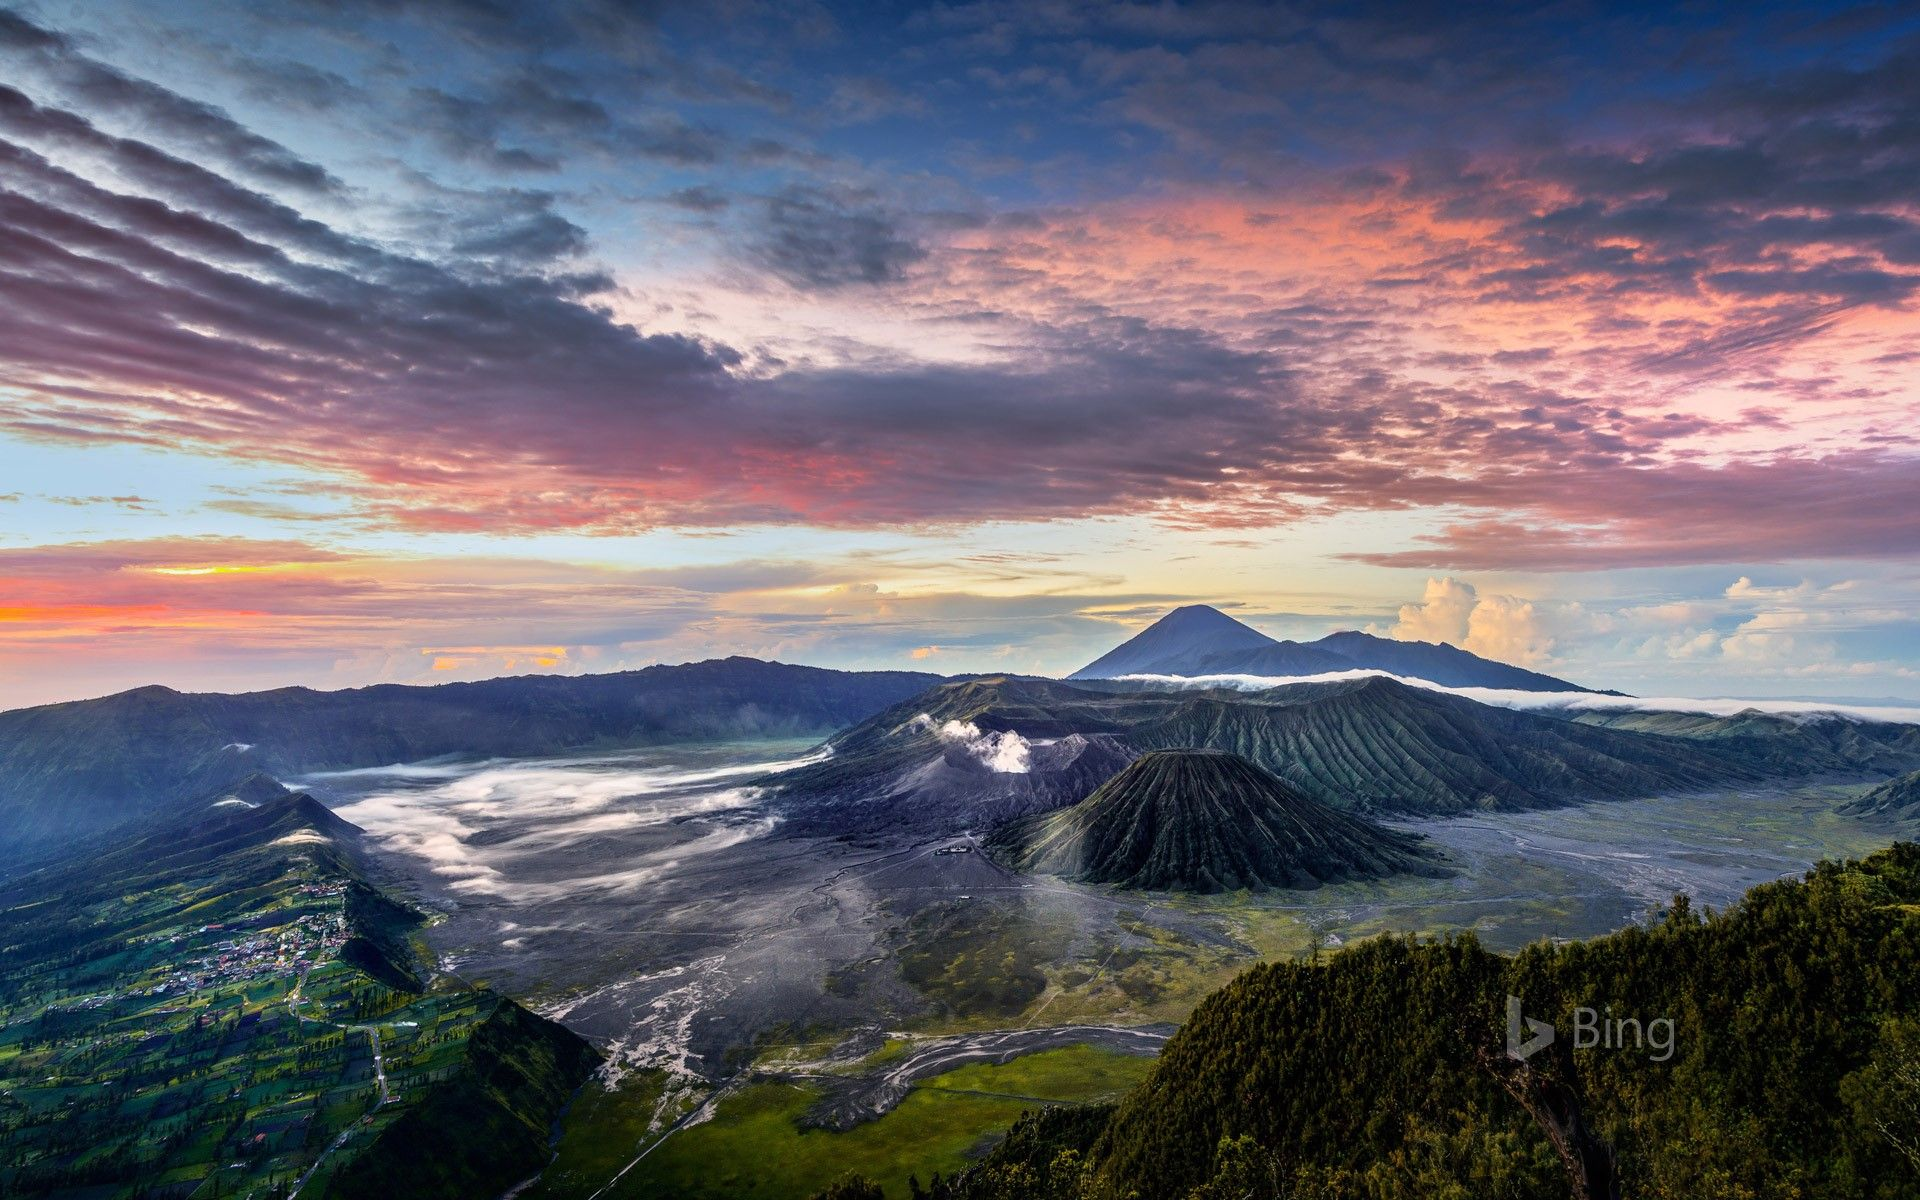 Bing daily picture for May 30 Smoldering Mount Bromo in